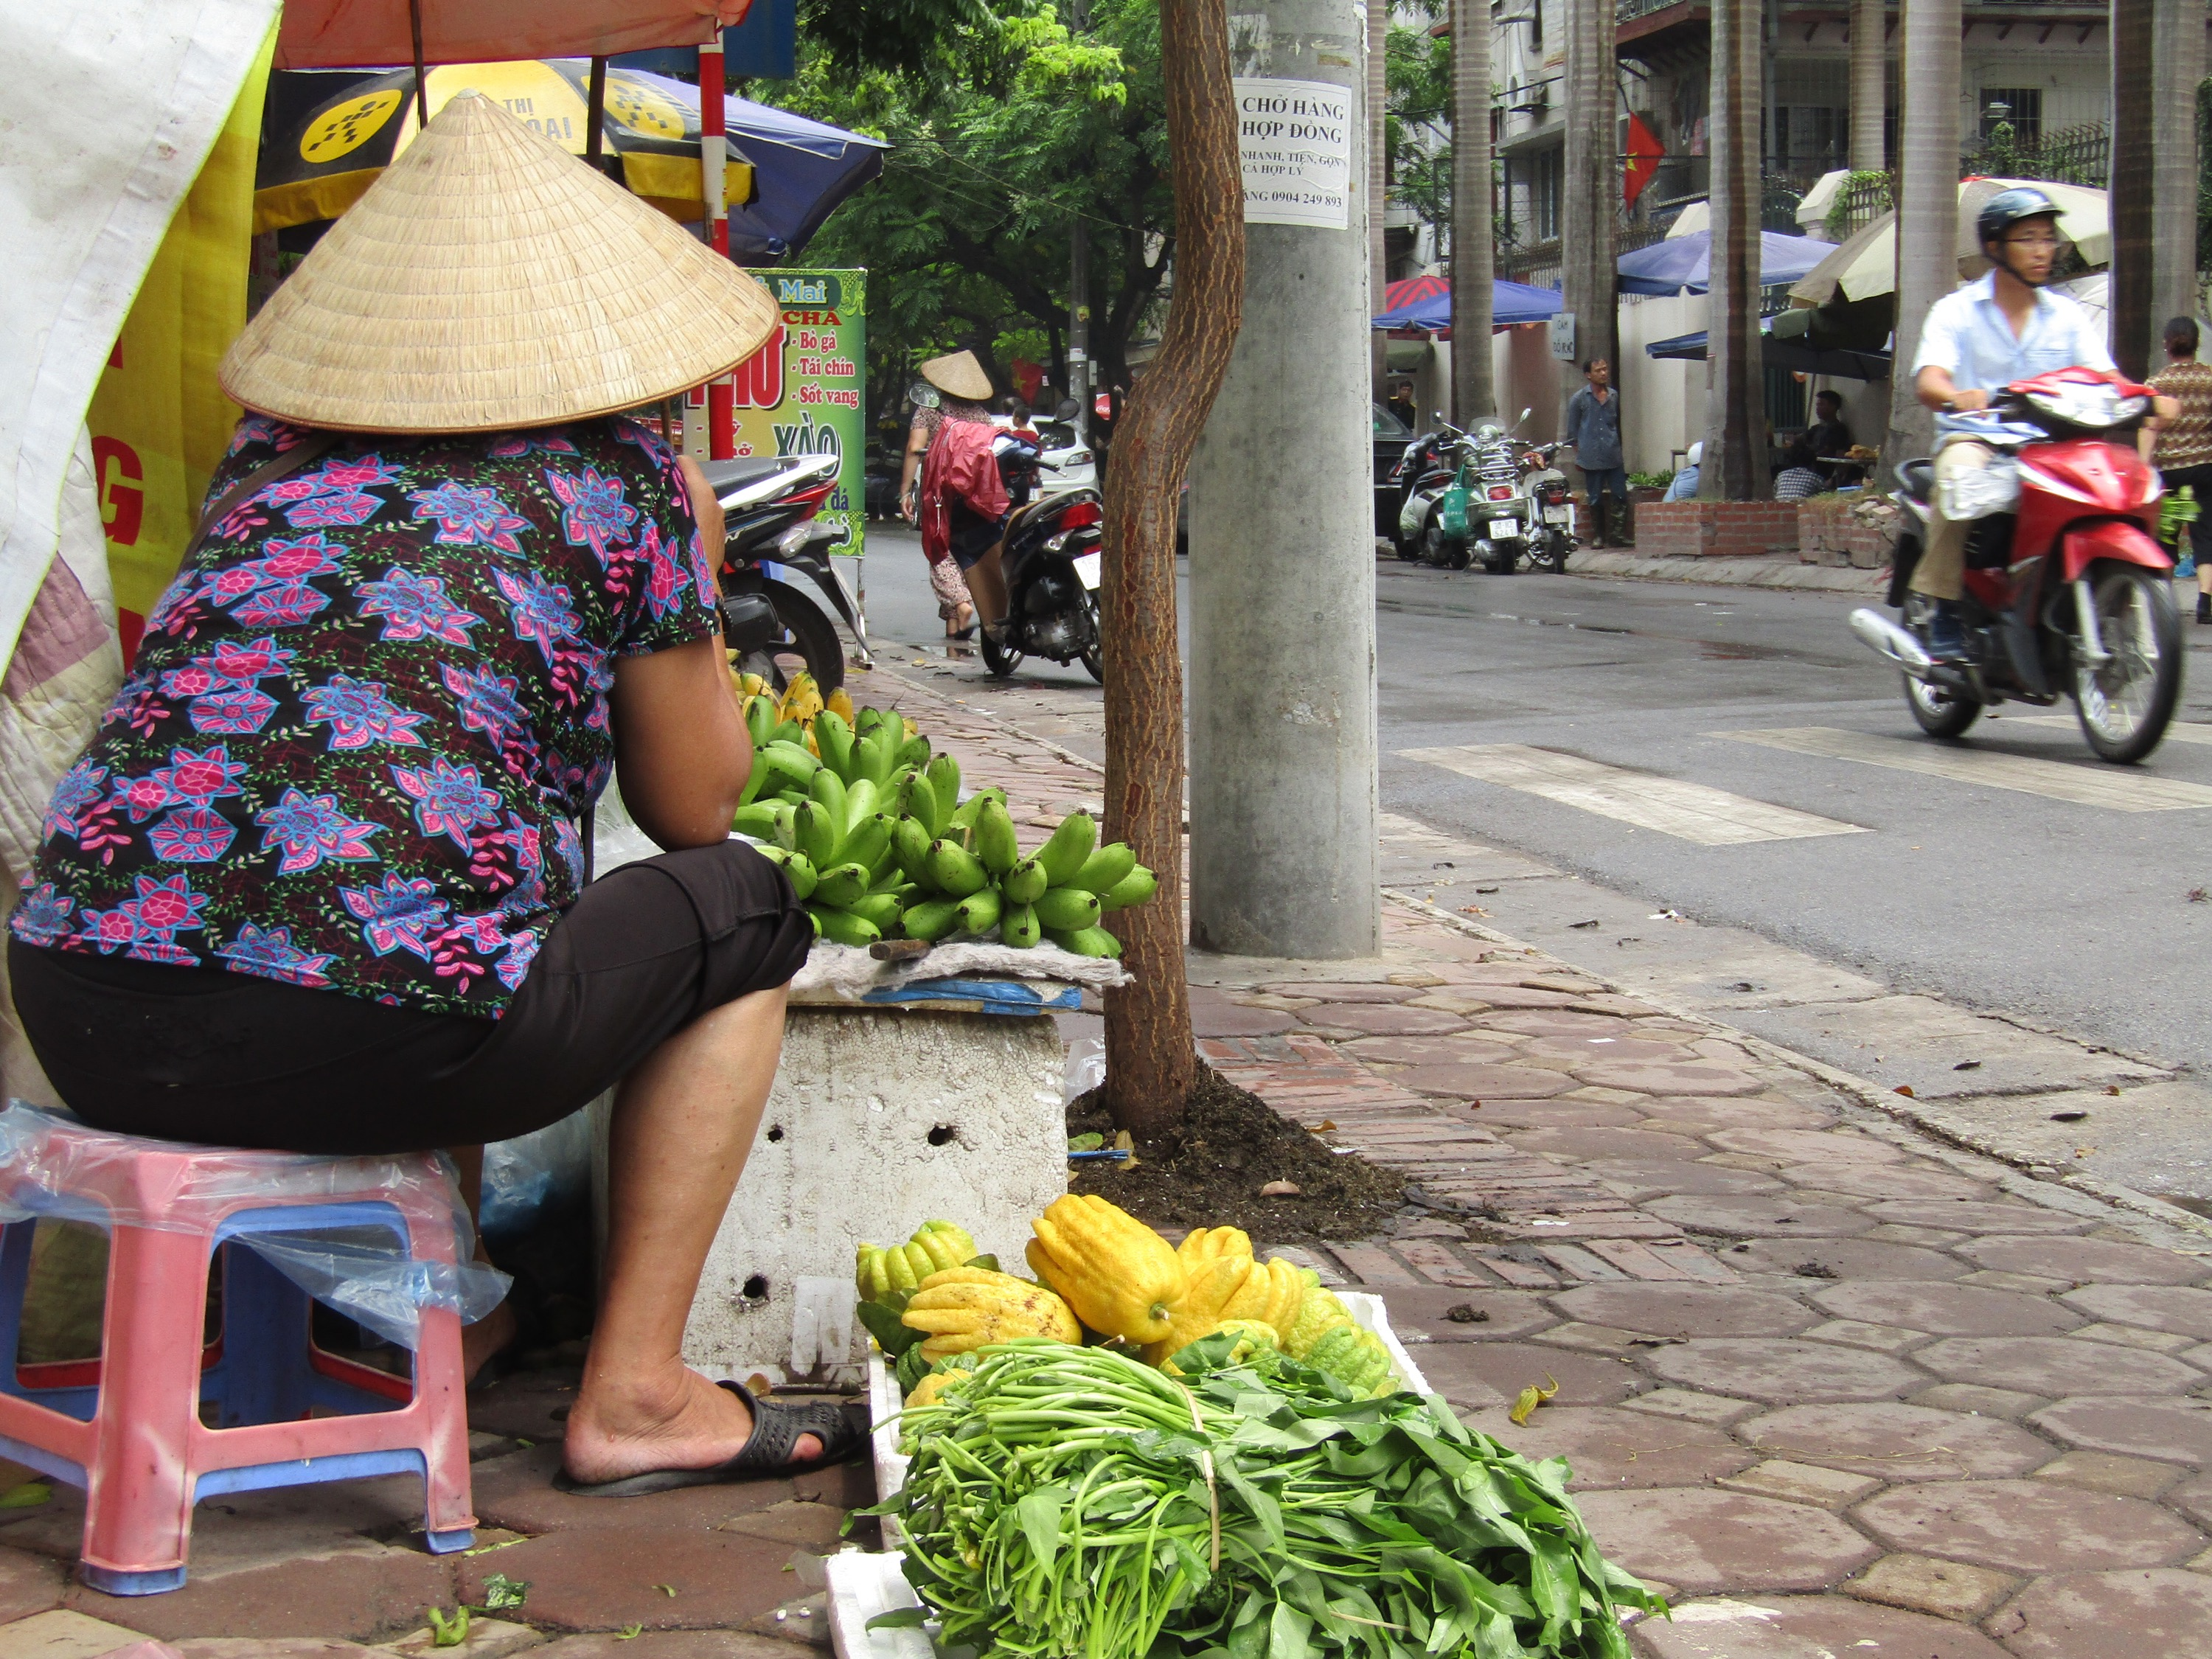 A woman selling vegetables on a busy street near the Old Quarter.